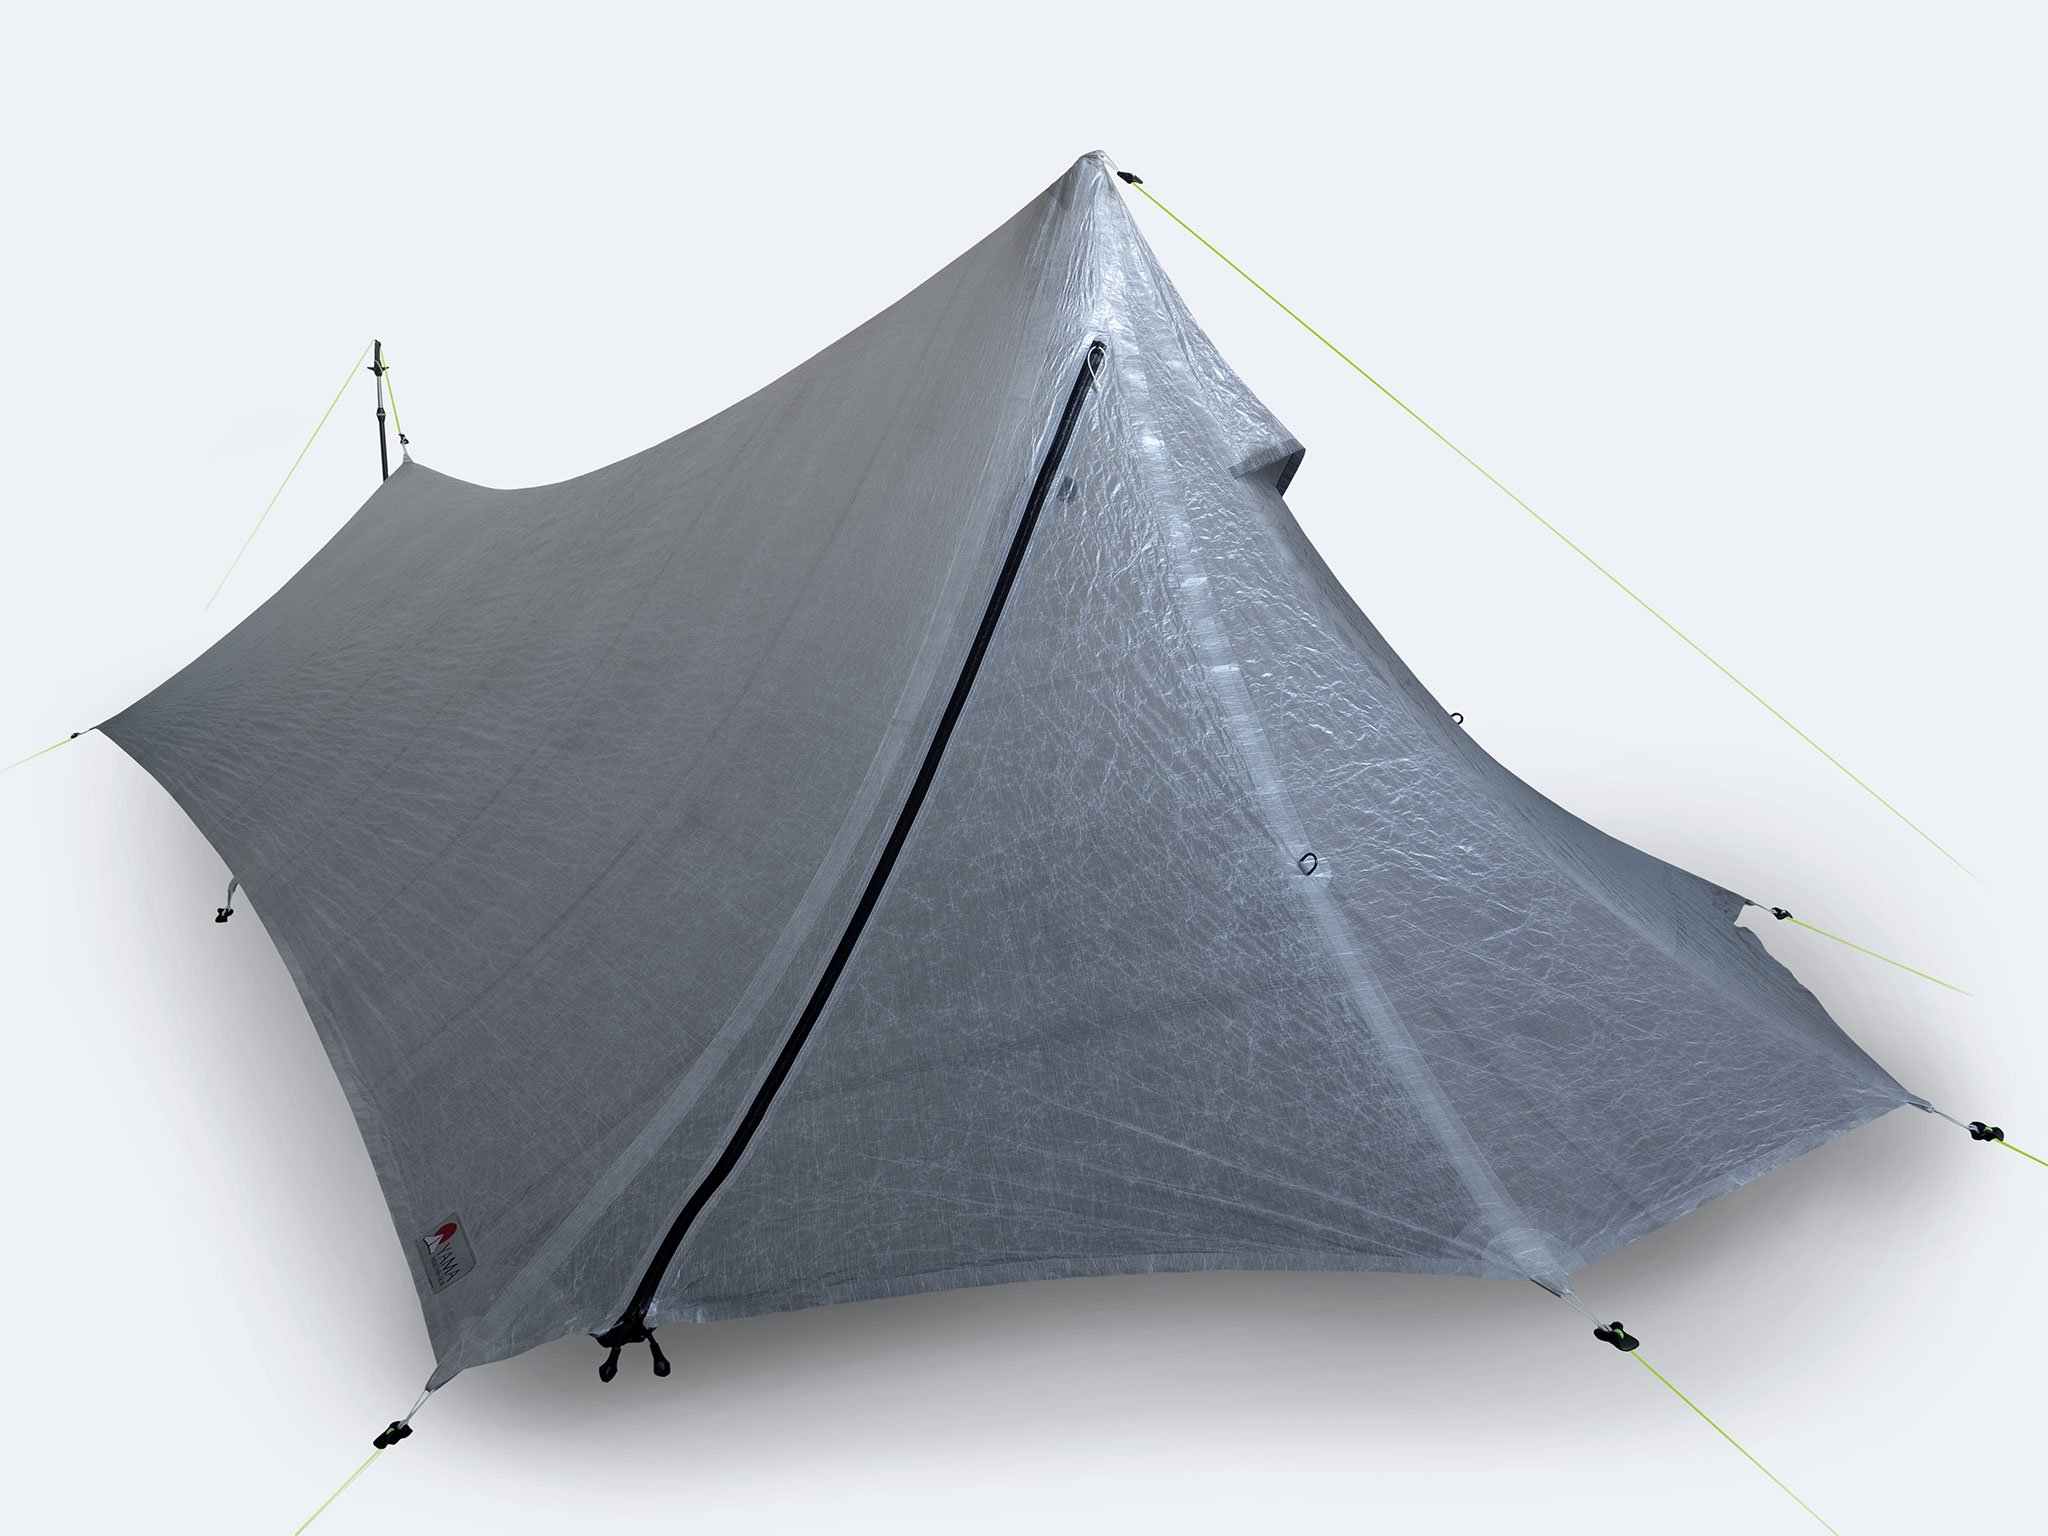 YAMA Mountain Gear 1P Cirriform Tarp - Dyneema